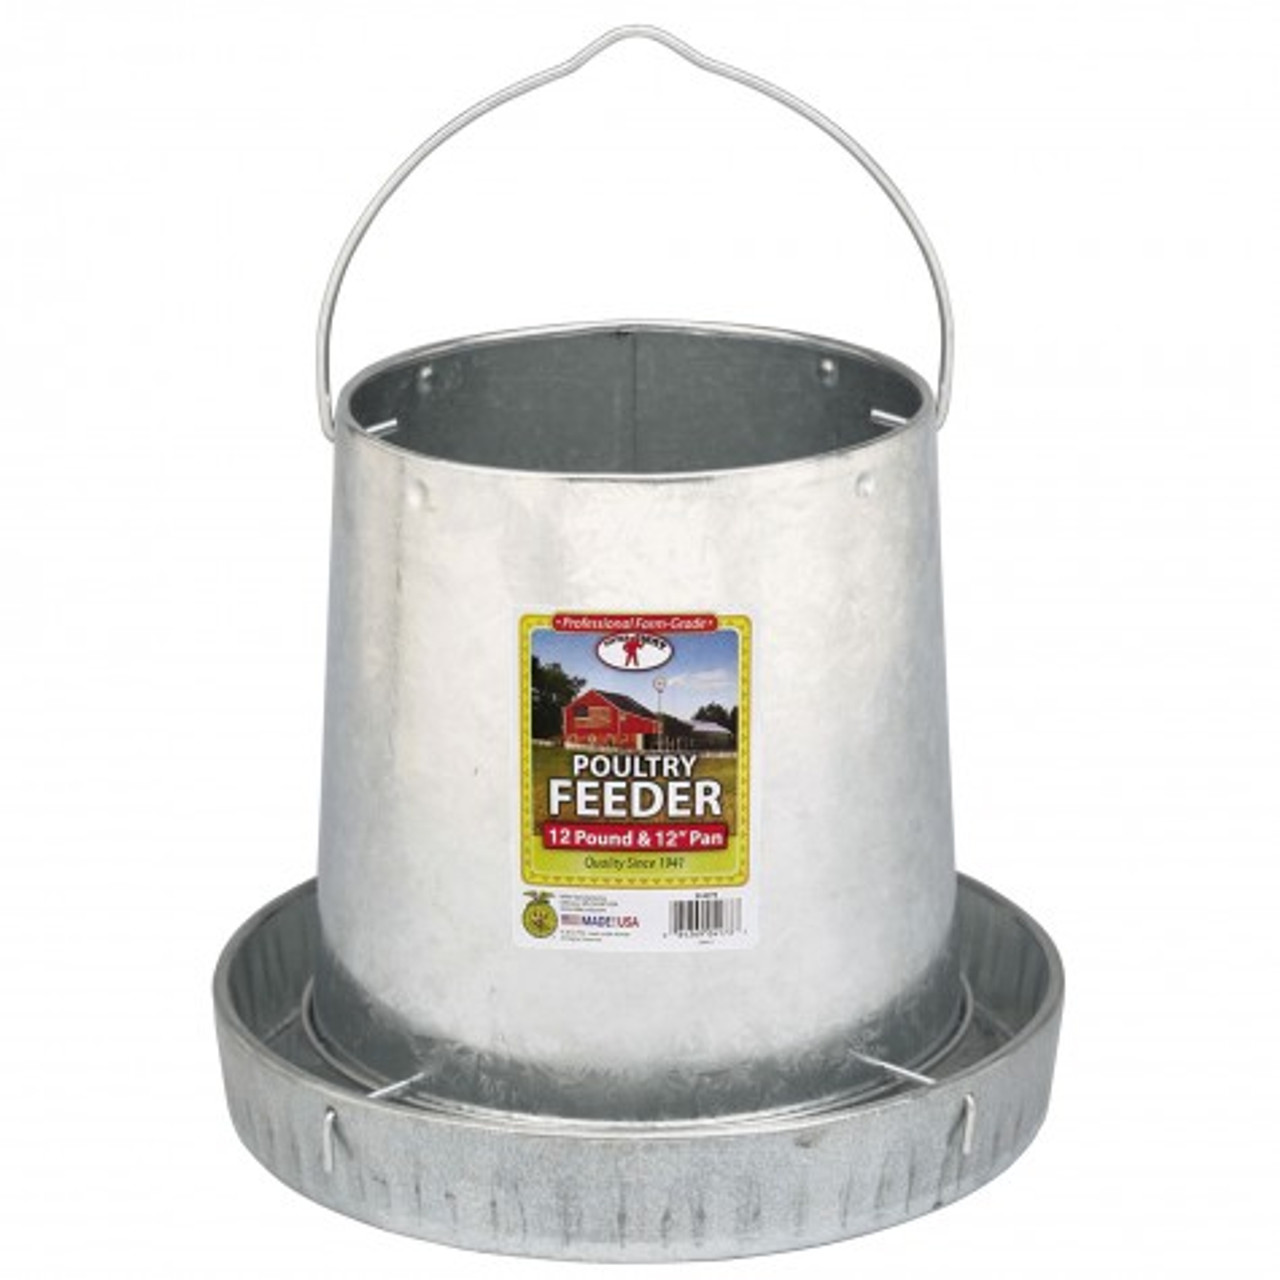 Little Giant - Hanging Metal Poultry Feeder - 12 lb.